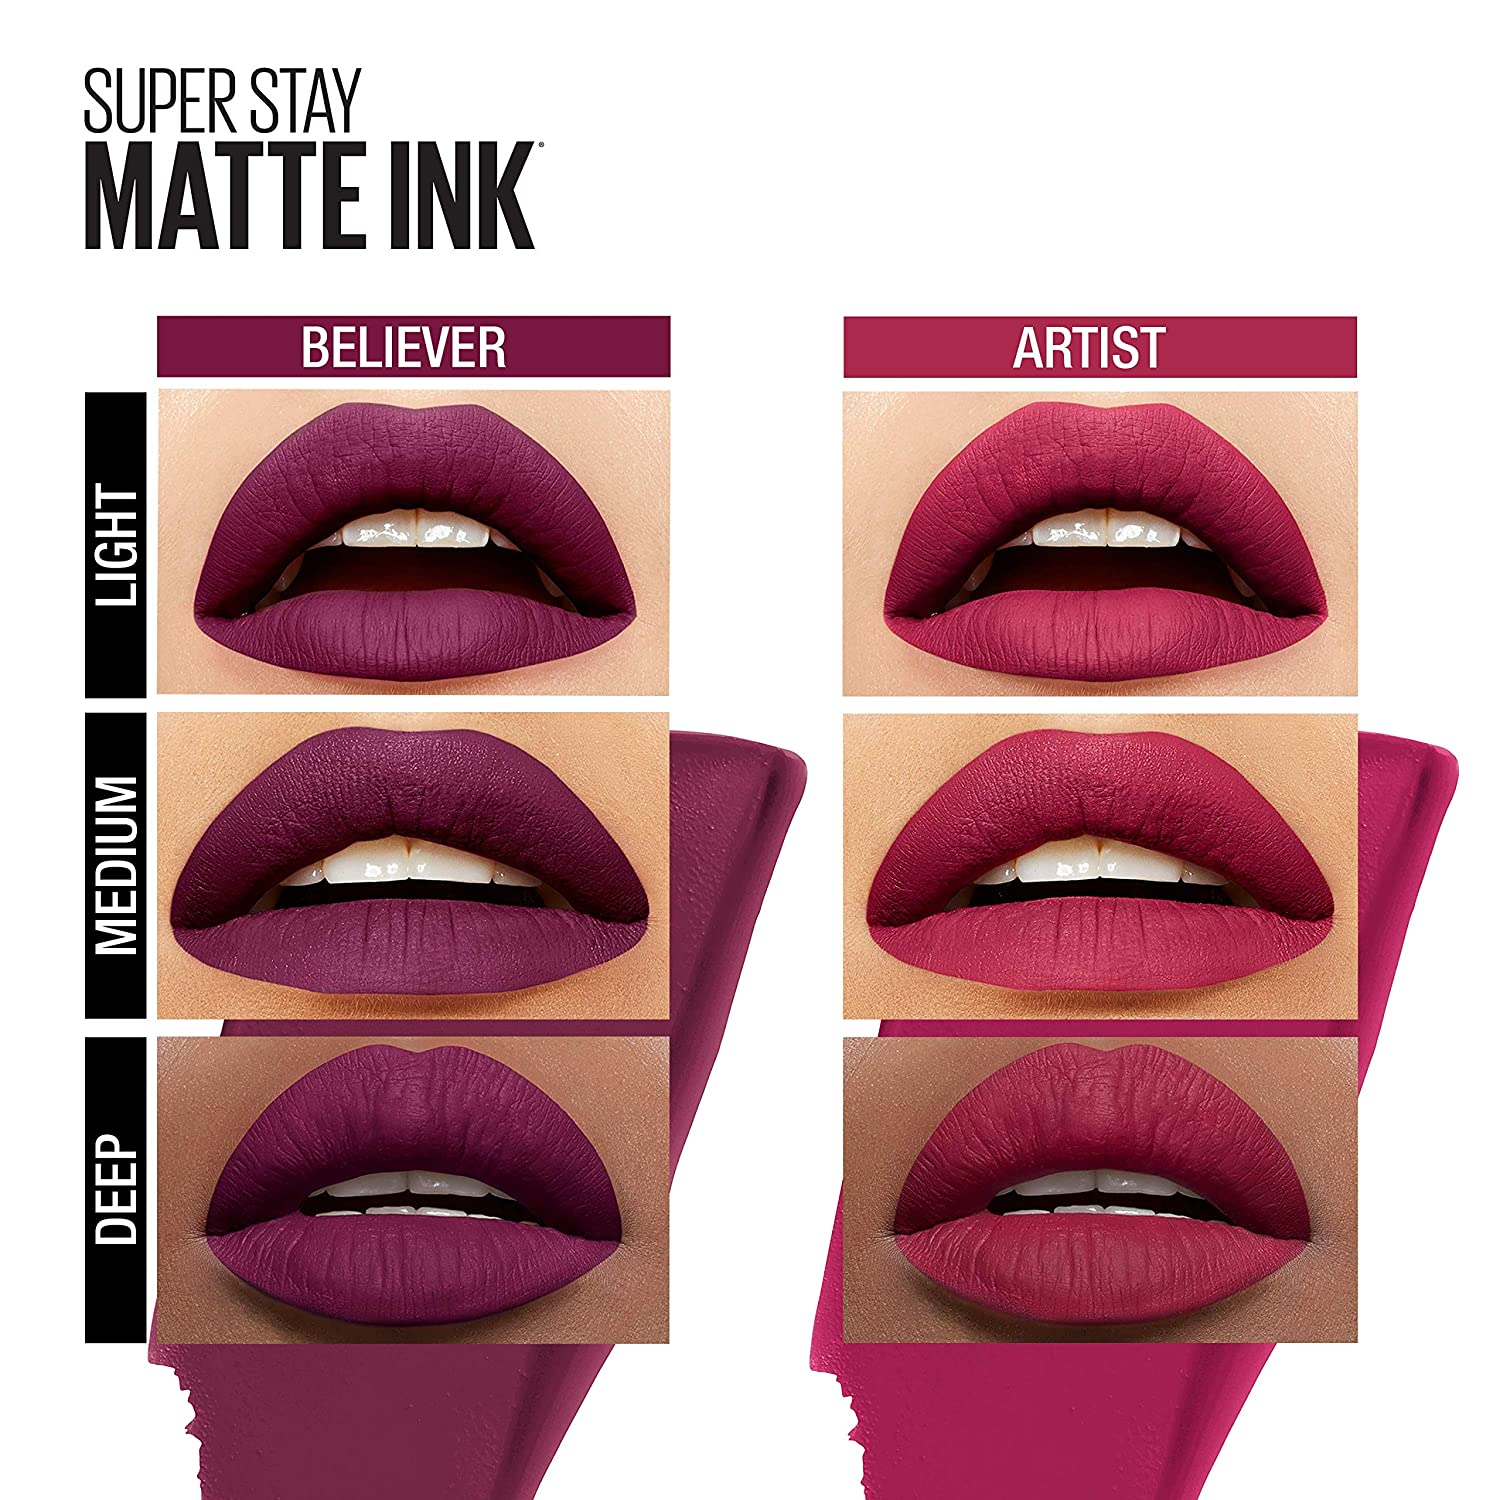 Maybelline New York Superstay Matte Ink Liquid Lipstick X Ashley Longshore Kit Artist Believer 2 Count